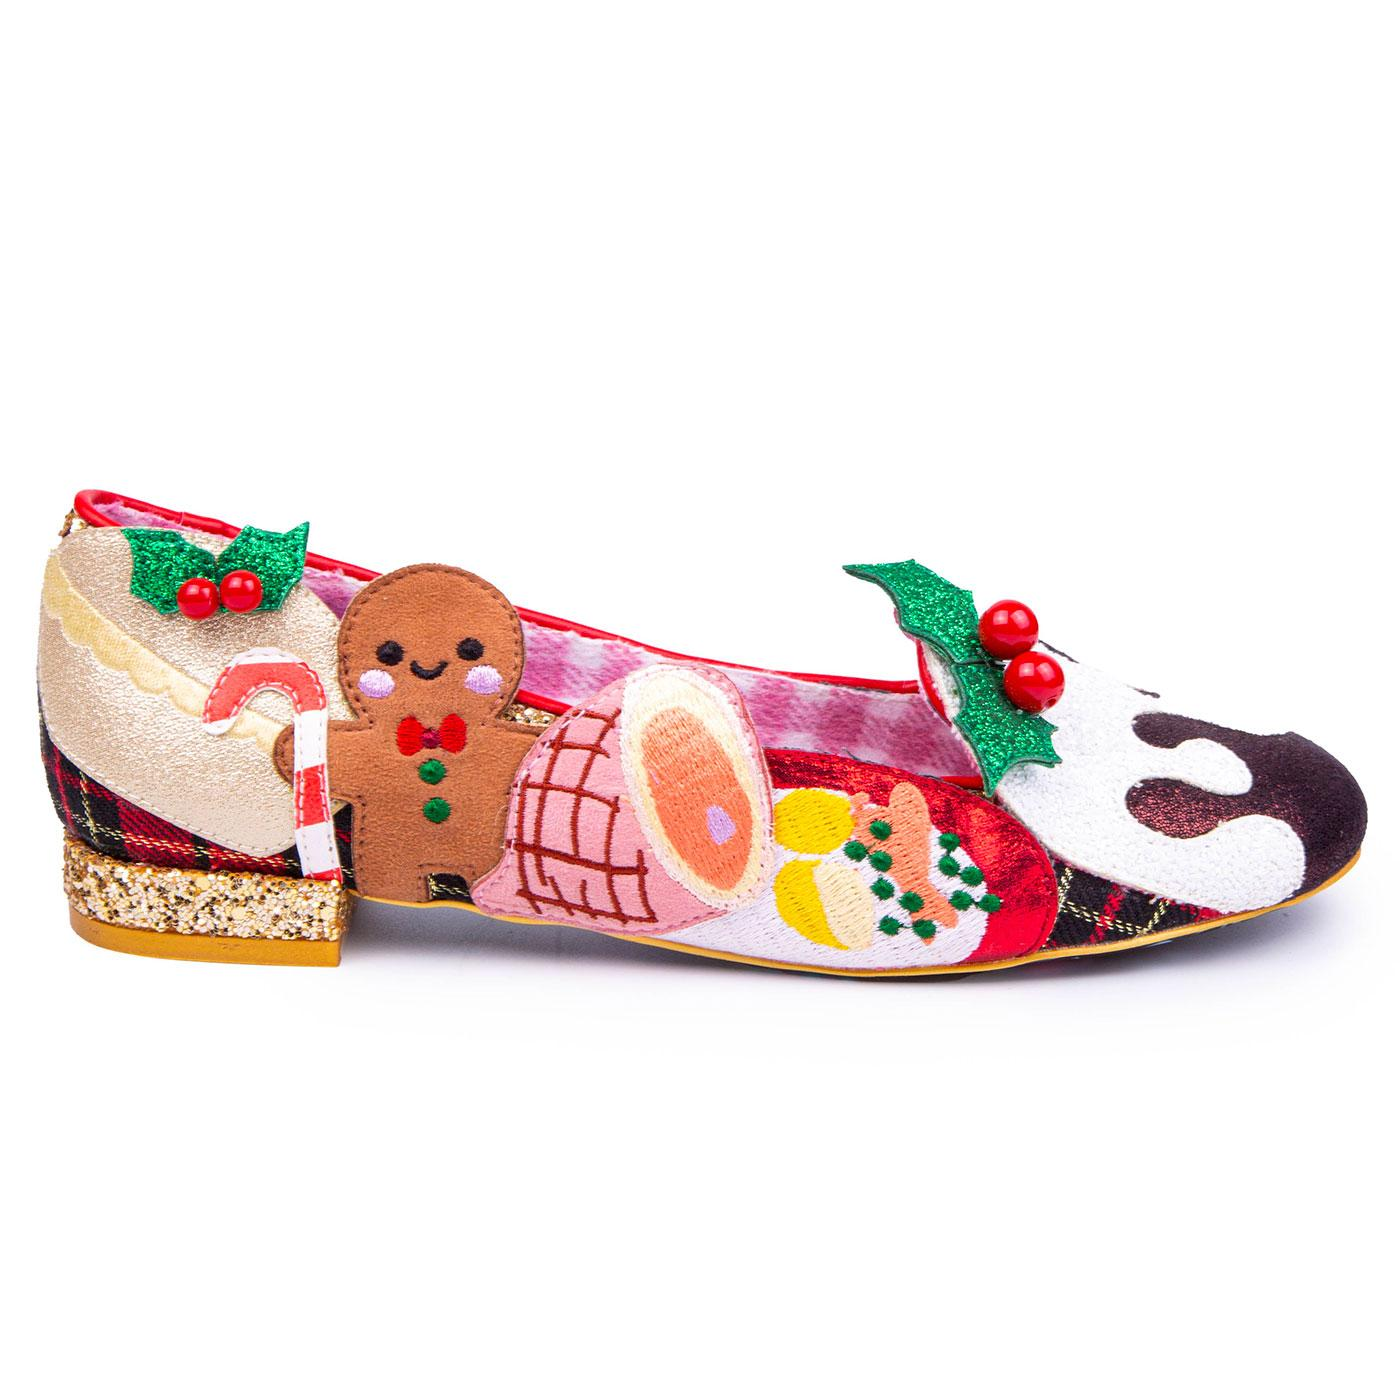 Xmas Lunch IRREGULAR CHOICE Festive Flats